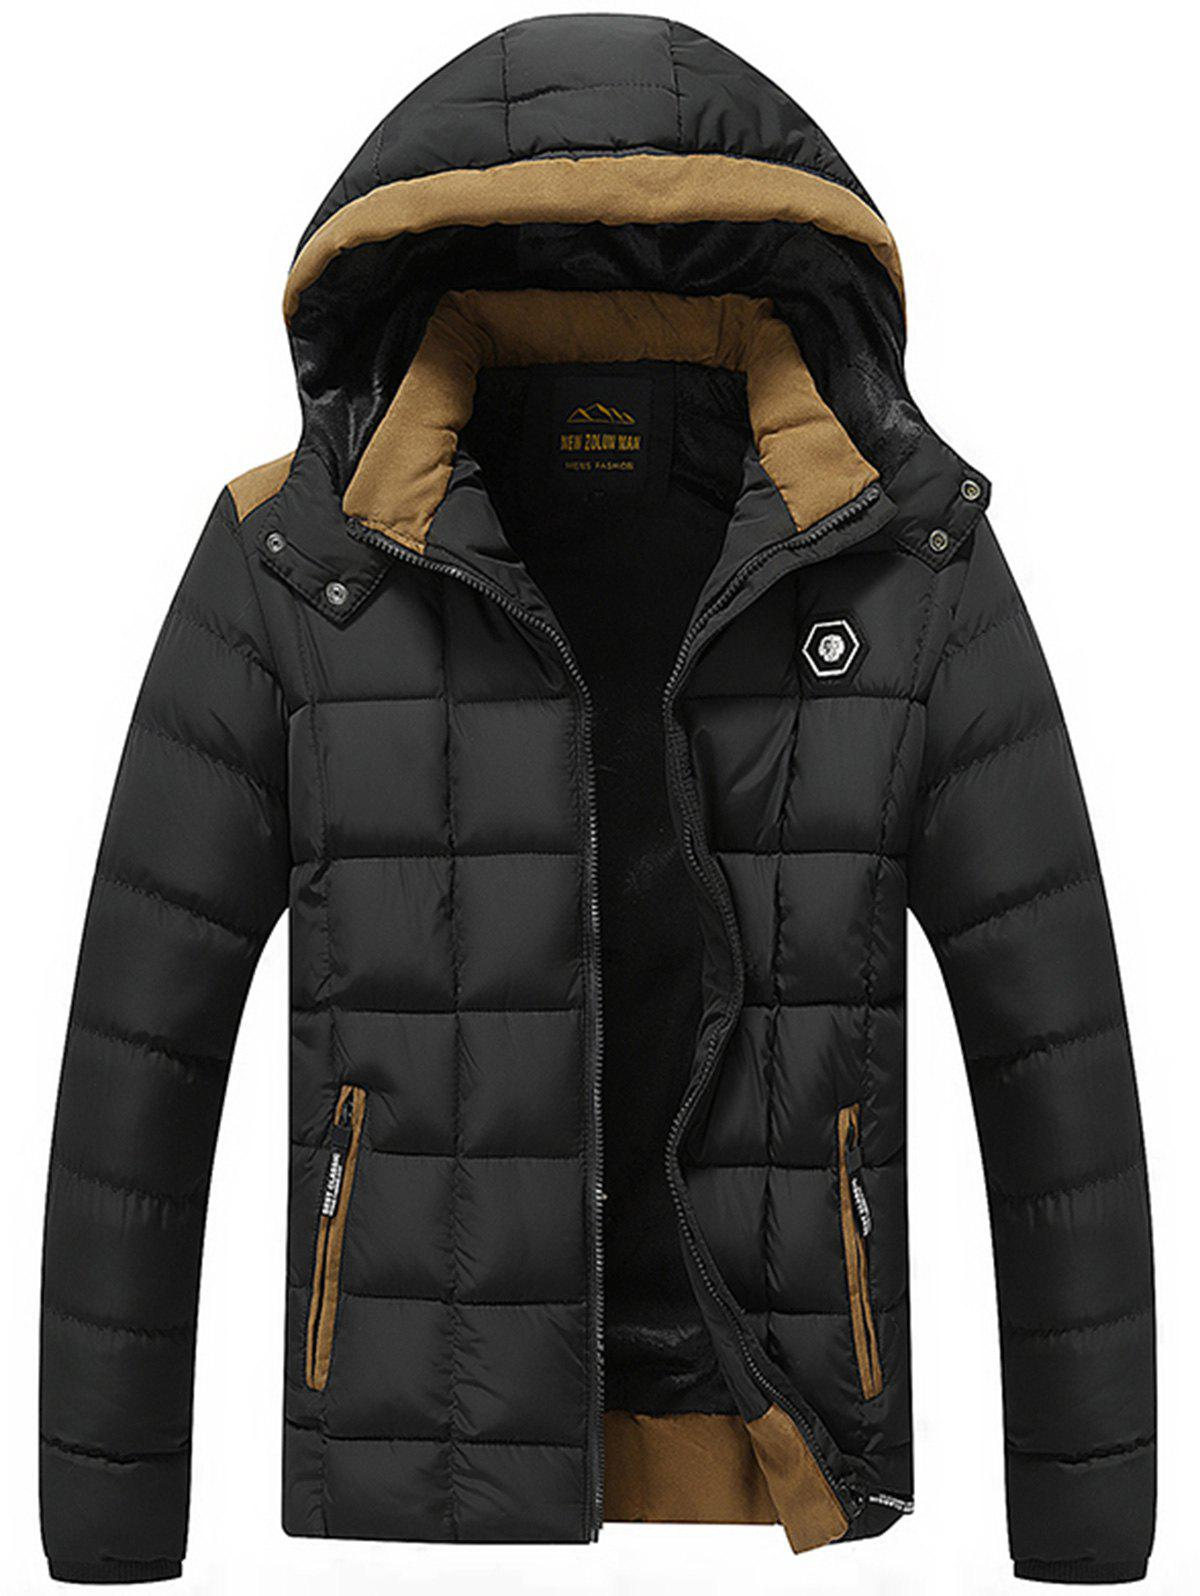 Hooded Metal Patched Puffer Jacket two tone hooded patched casual jacket